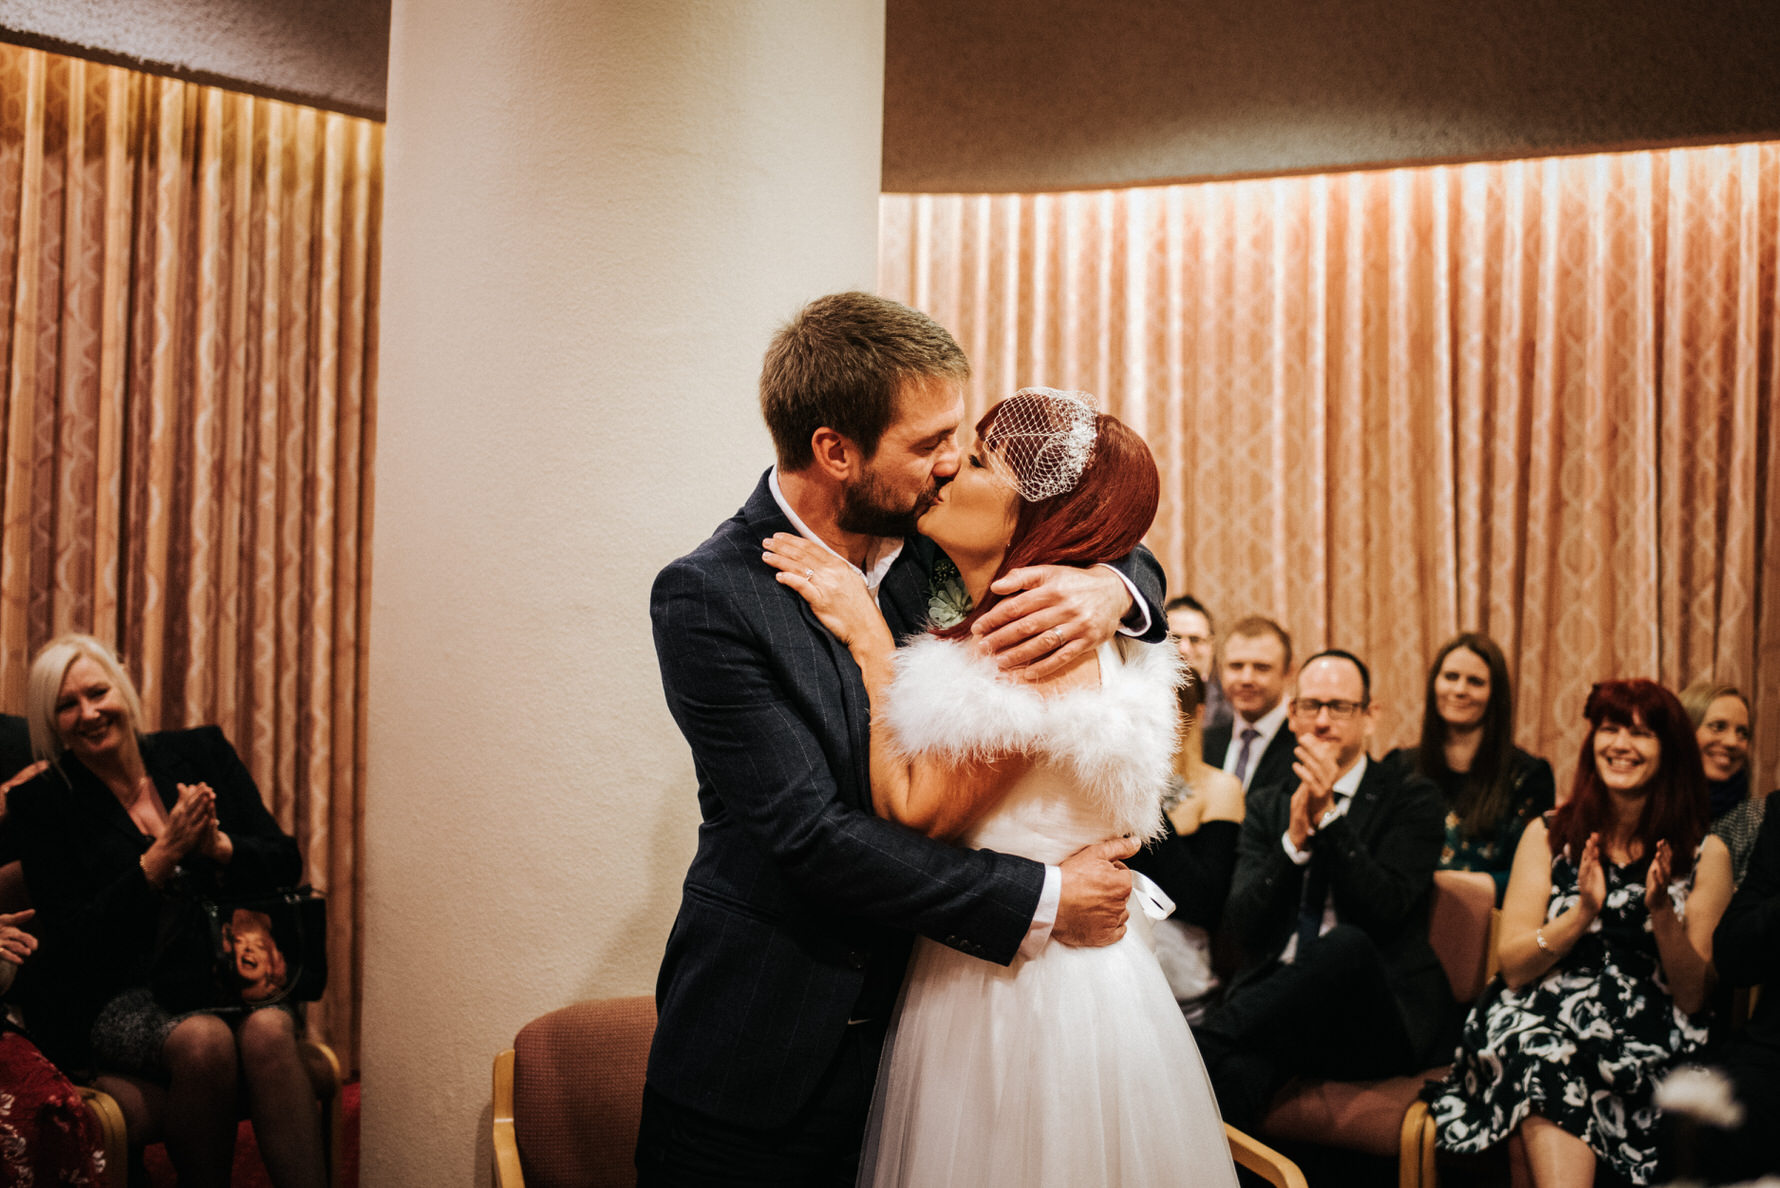 Cheshire Wedding Photojournalism - A bride and grooms first kiss